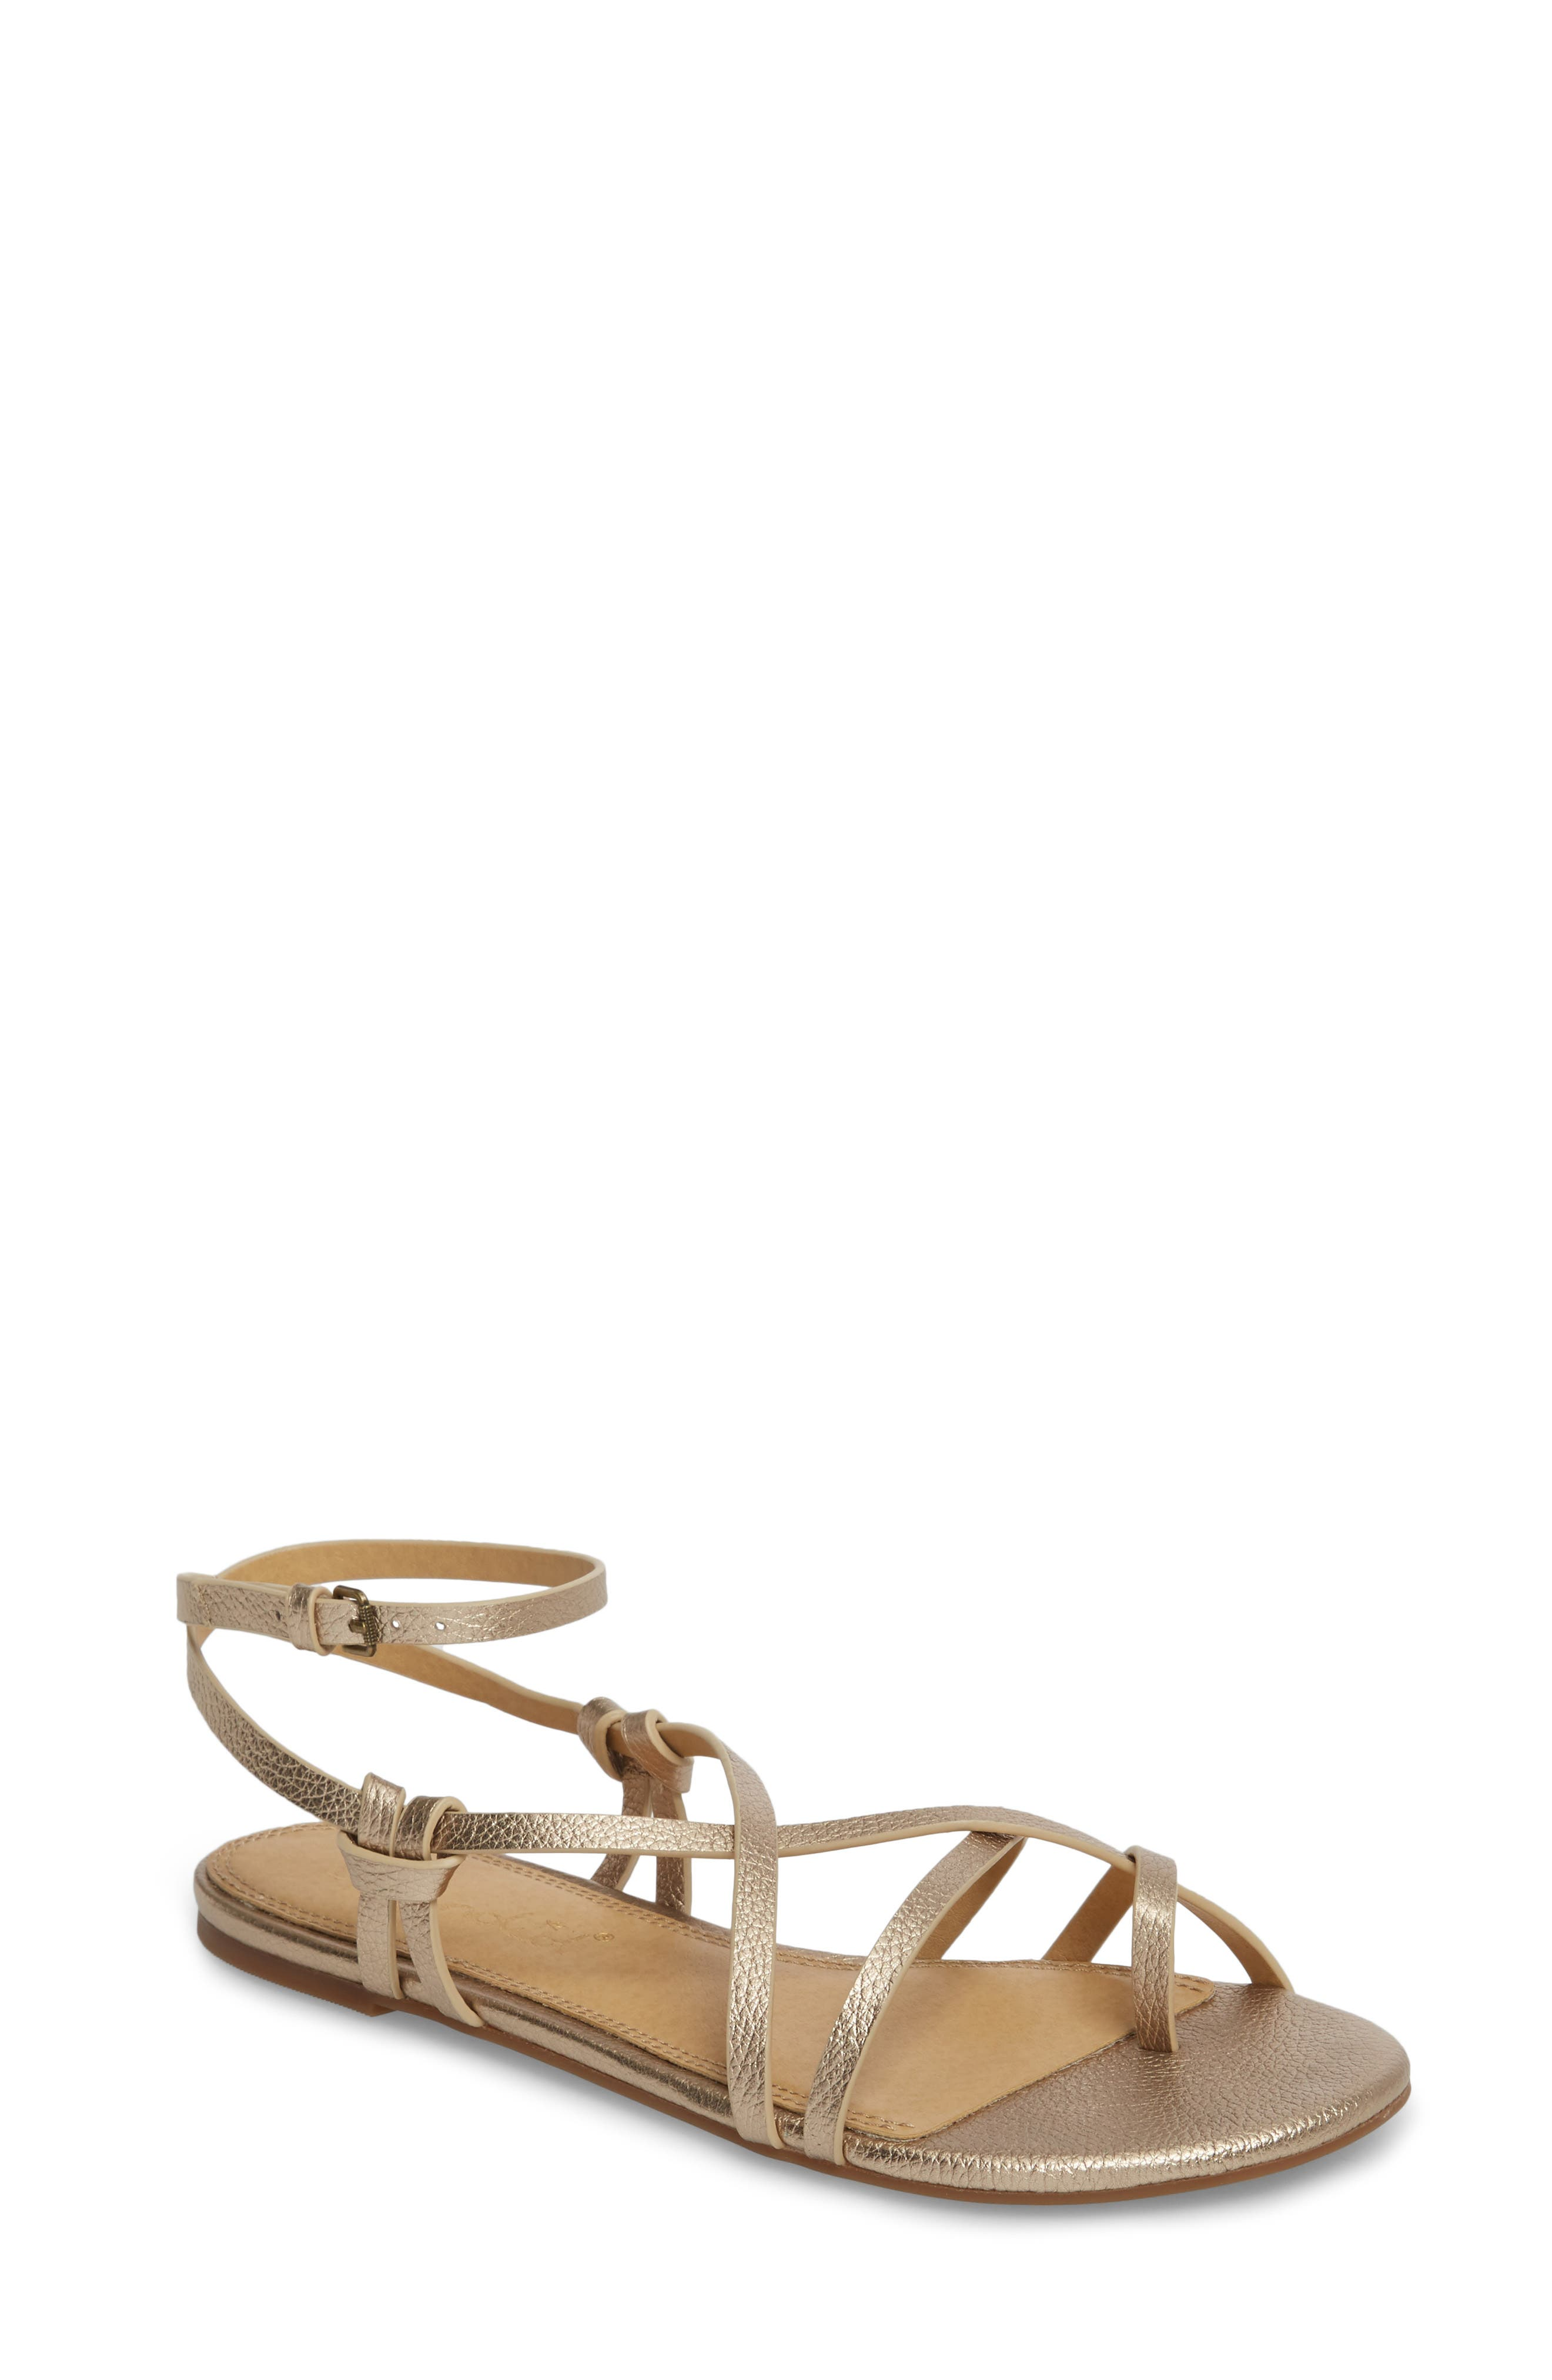 Flynn Flat Sandal,                         Main,                         color, Champagne Leather